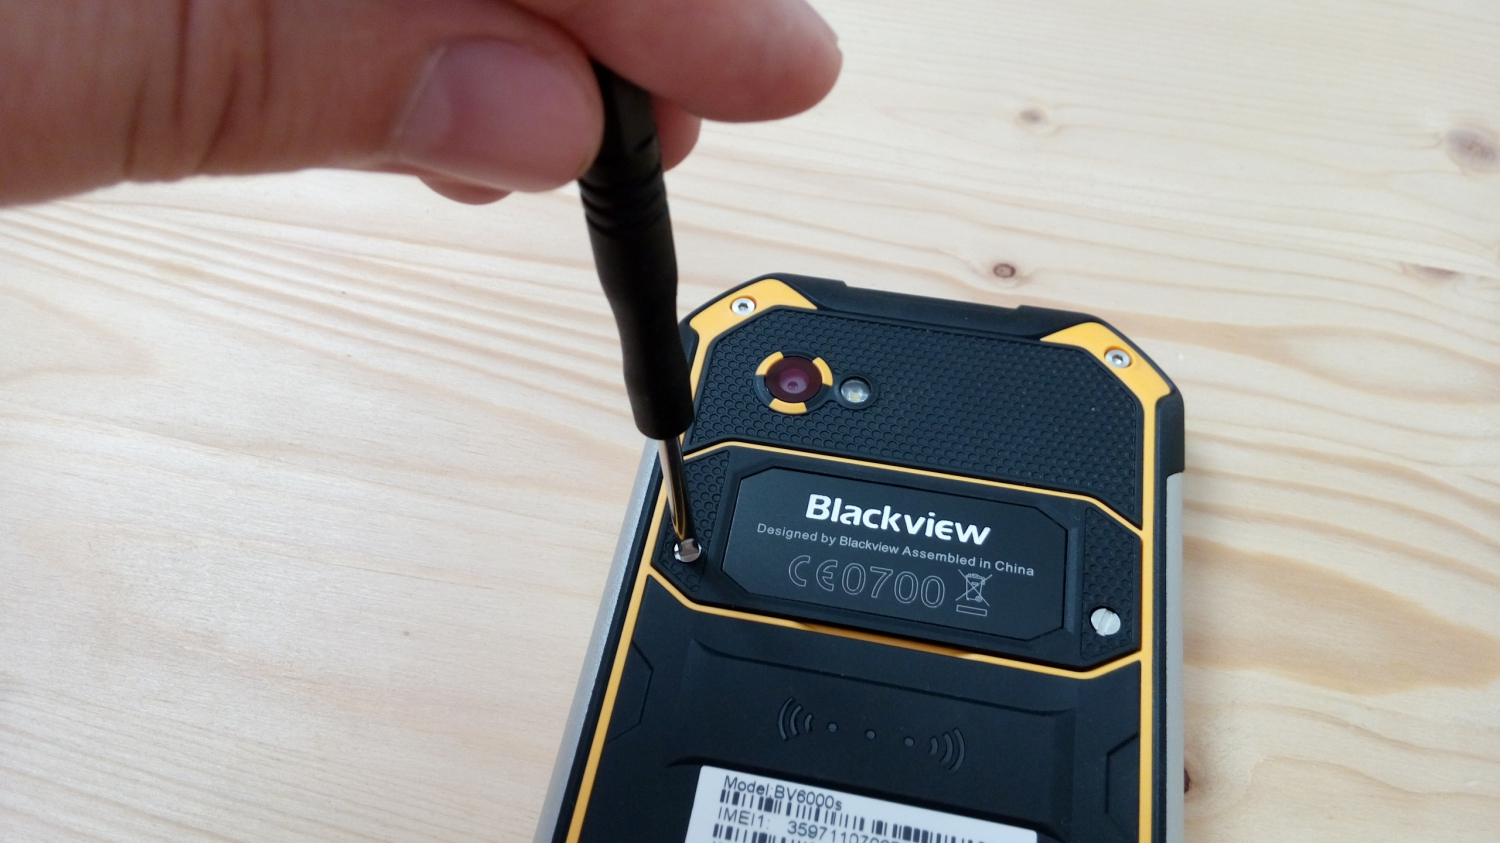 Blackview BV6000s photo 10